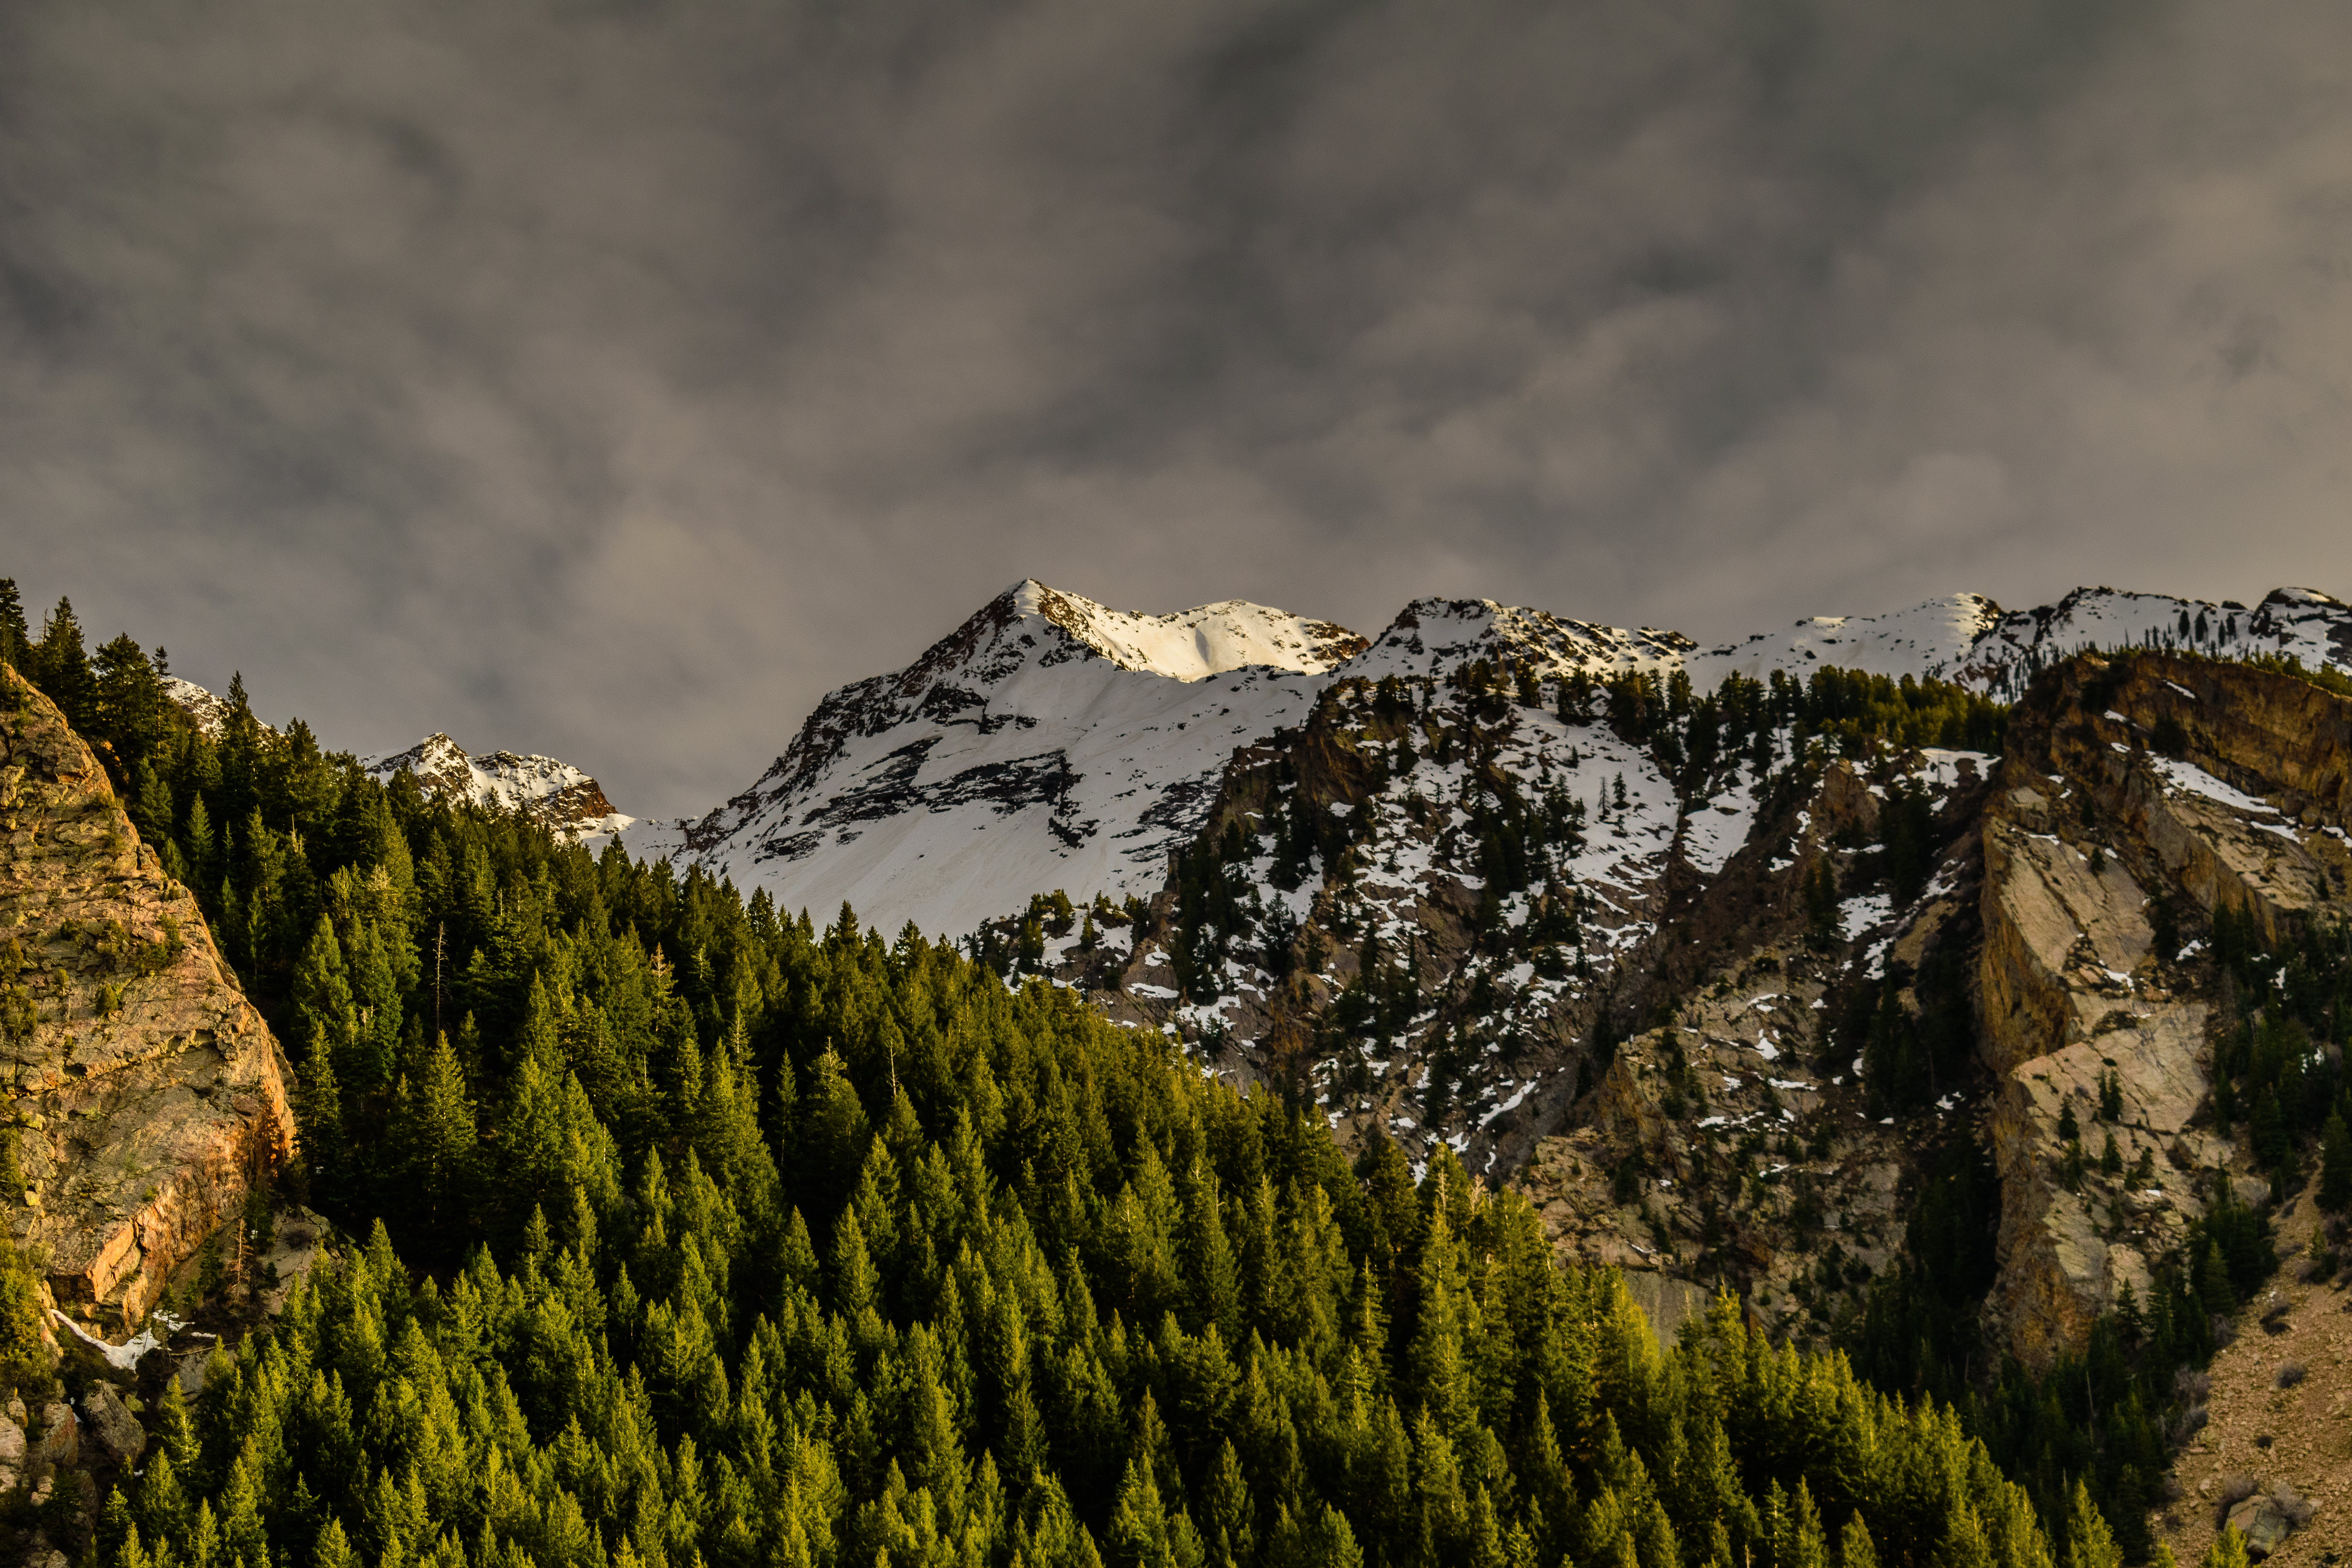 Brown Rocky Mountain Covered With Snow Near Green Trees Under Cloudy Sky